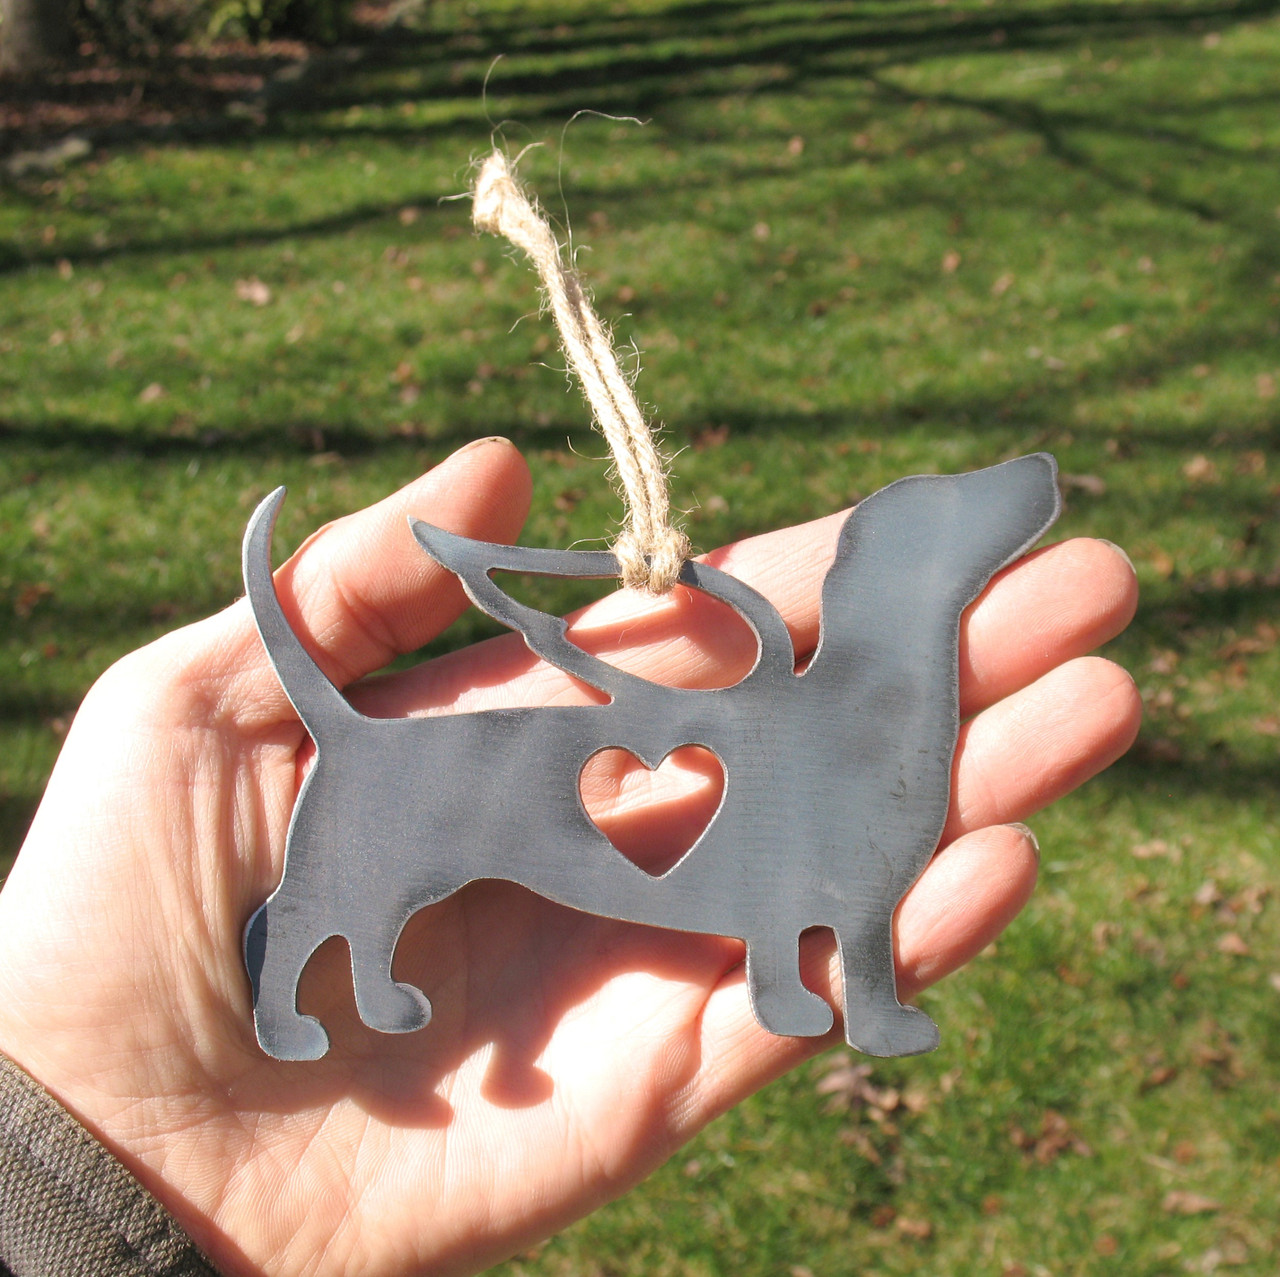 Dachshund Dog Ornament 1 Pet Memorial W/ Angel Wings - Pet Loss Dog Sympathy Remembrance Gift - Metal Dog Christmas Ornament